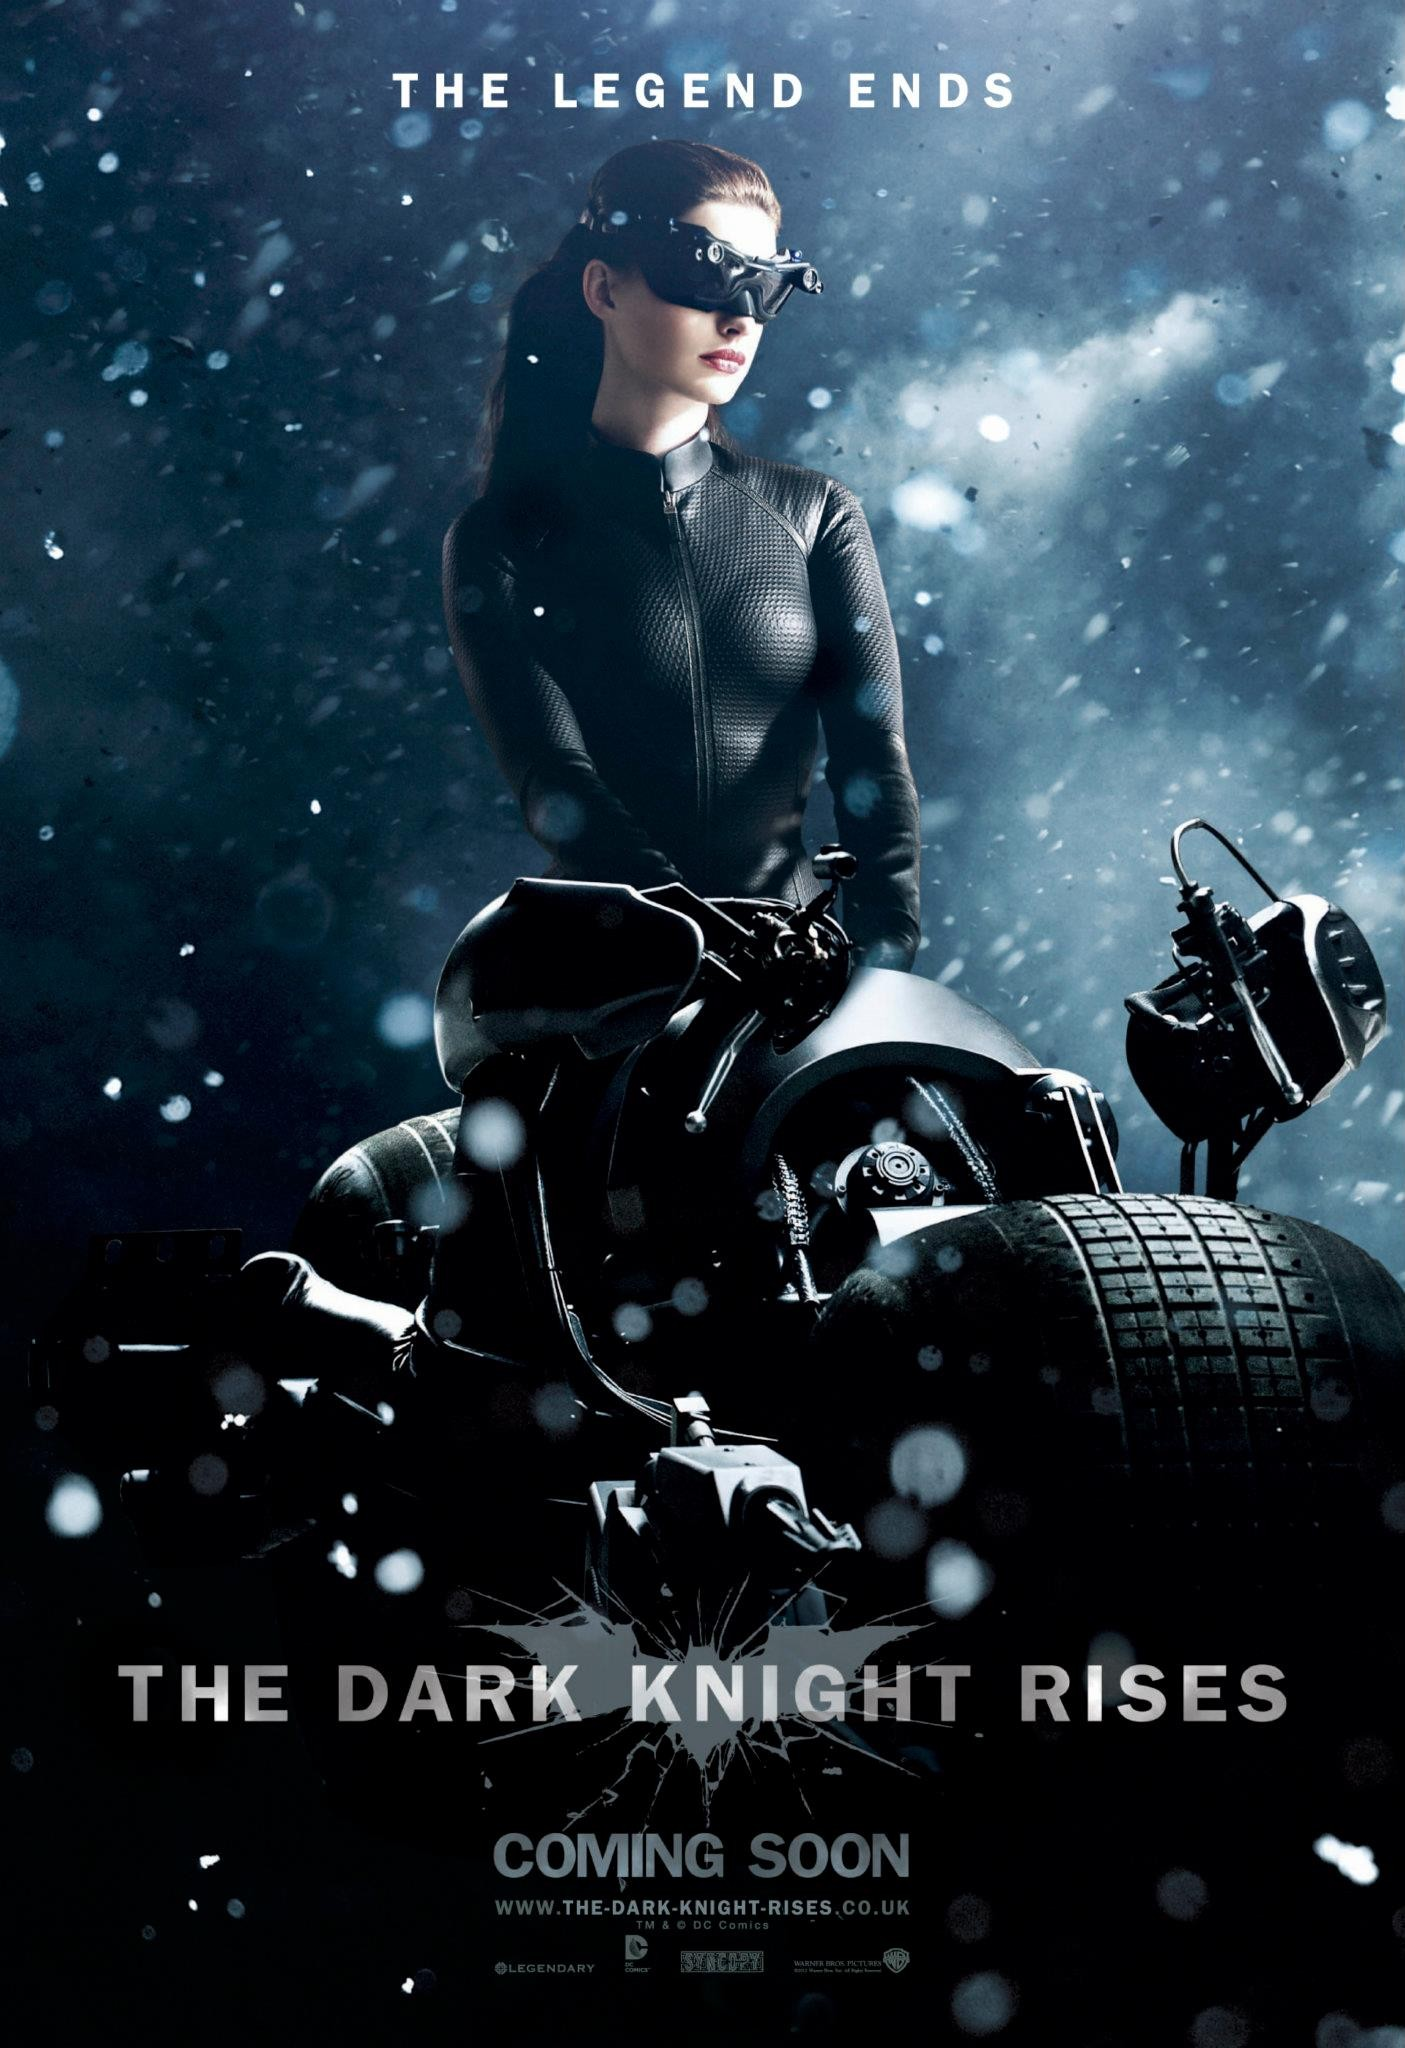 The Dark Knight Rises - Catwoman poster